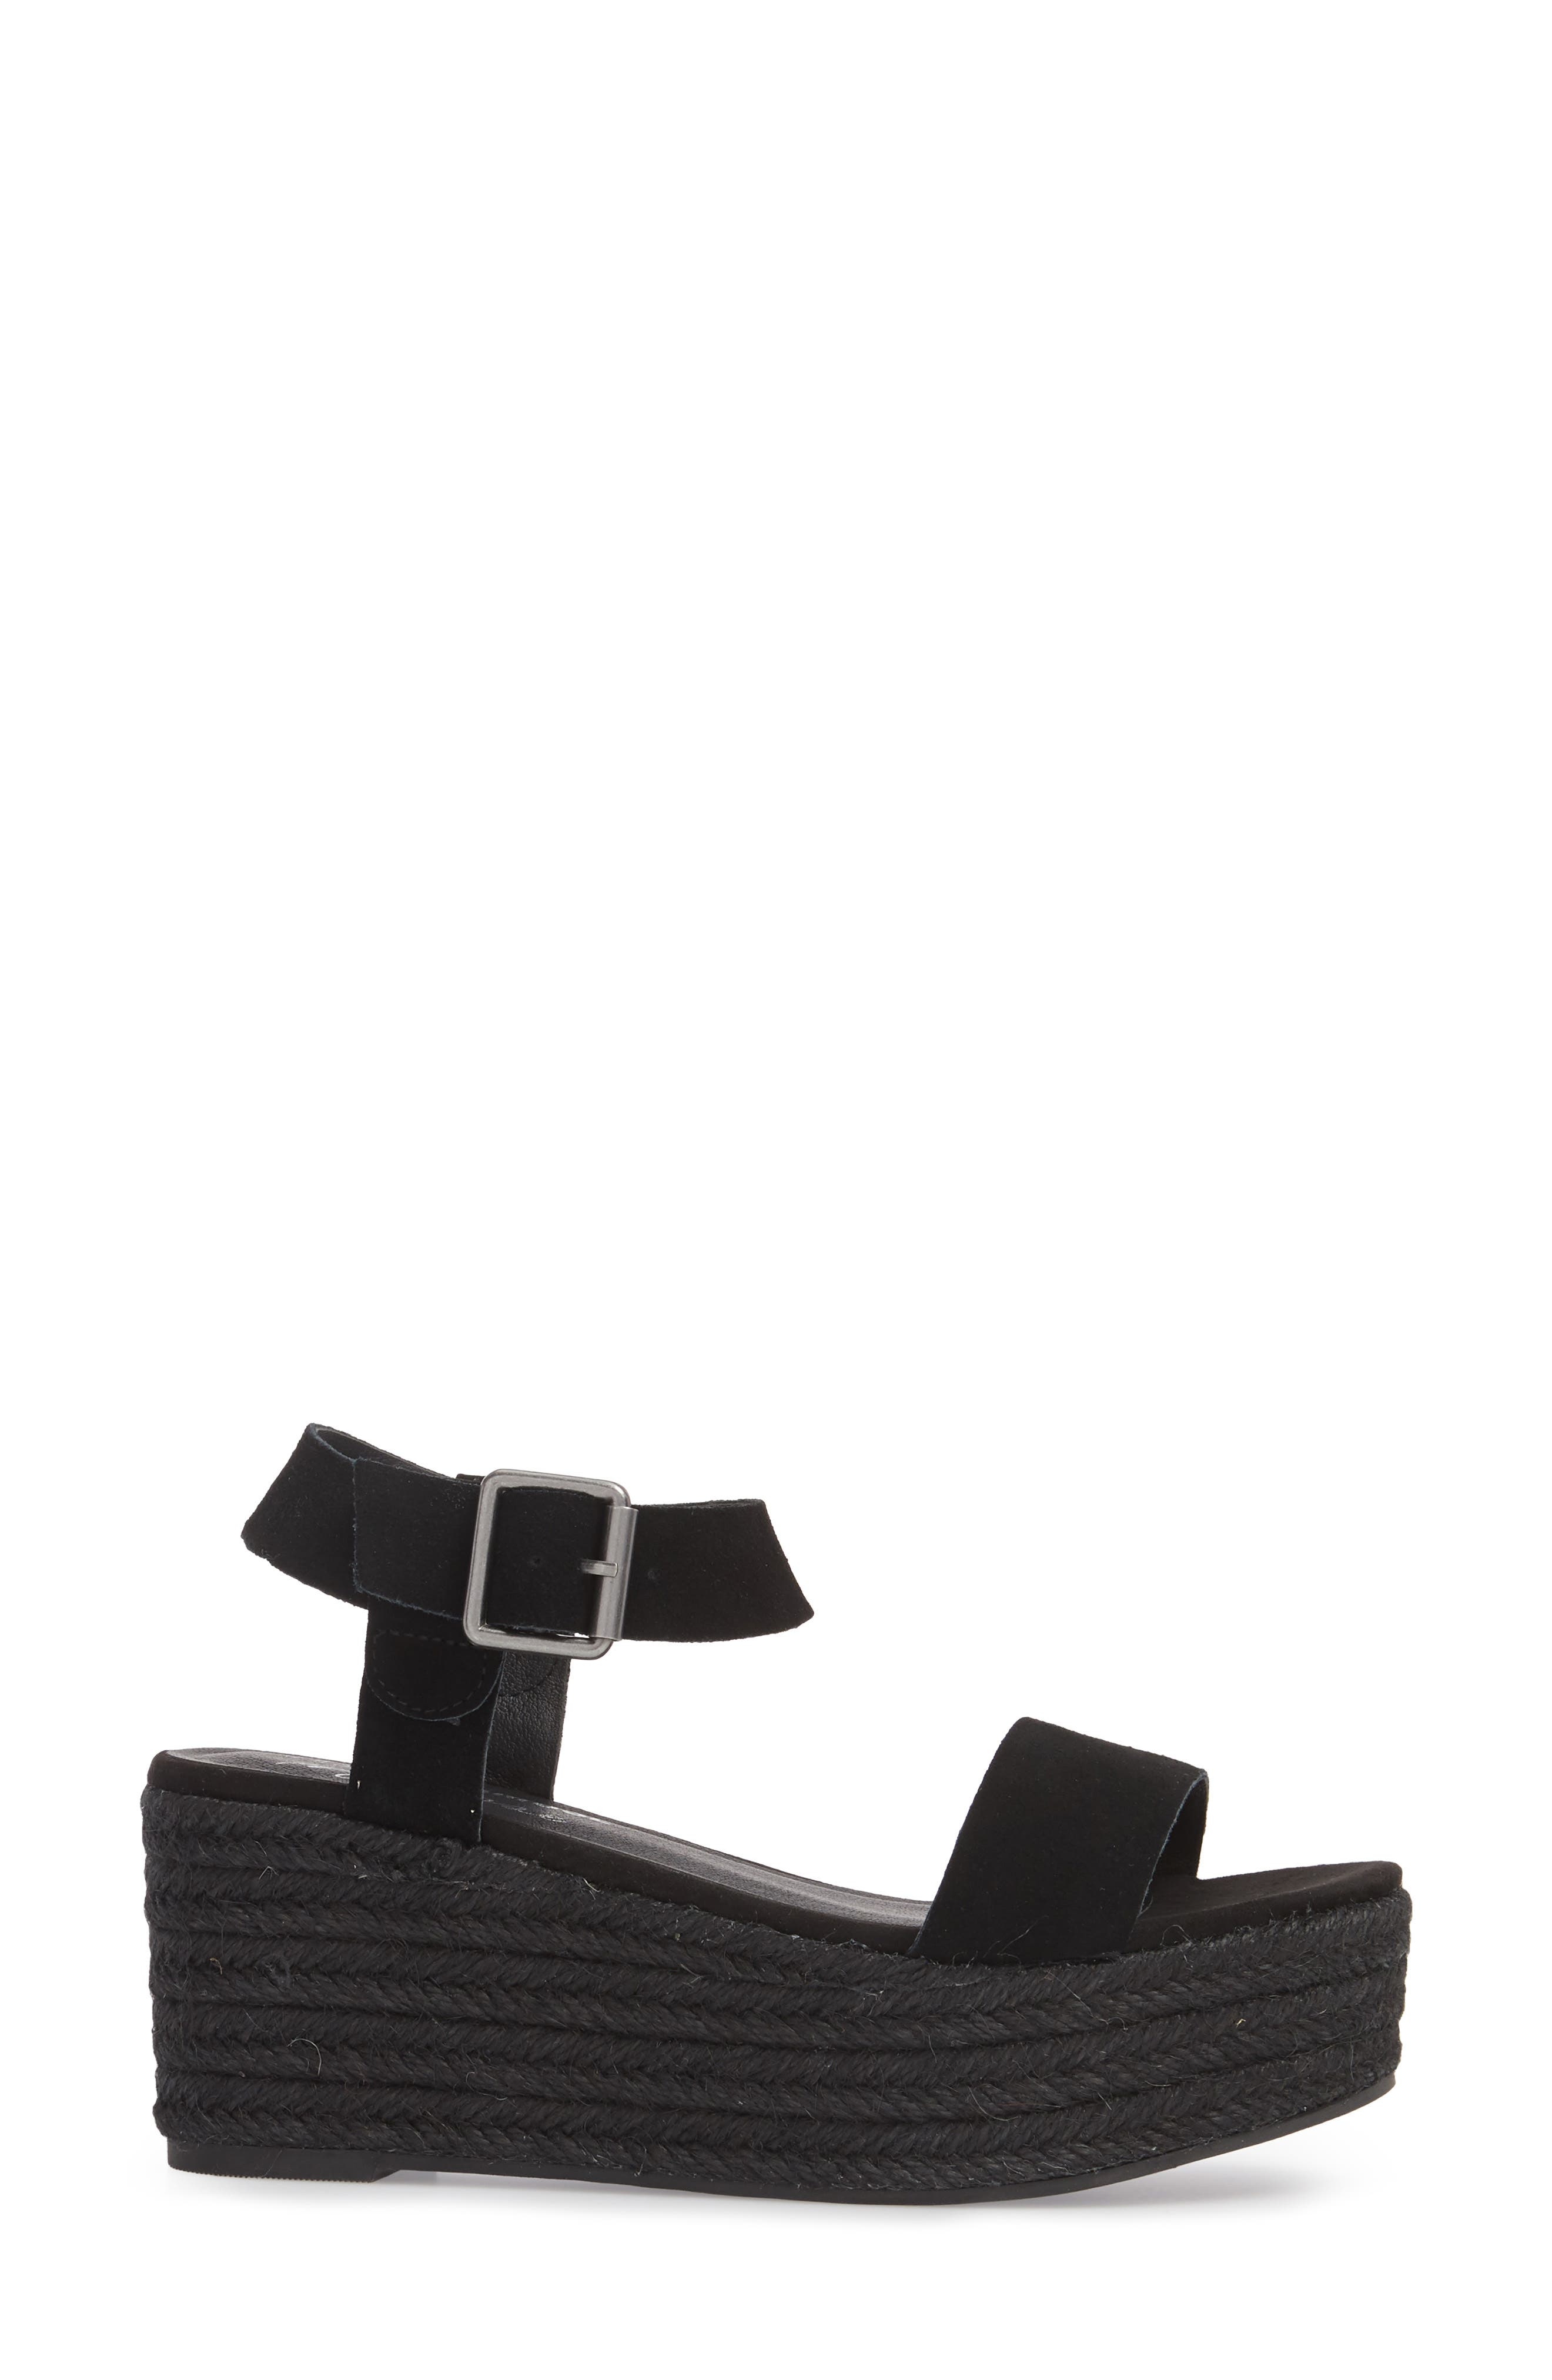 Amuse Society x Matisse Siena Wedge Sandal,                             Alternate thumbnail 3, color,                             017